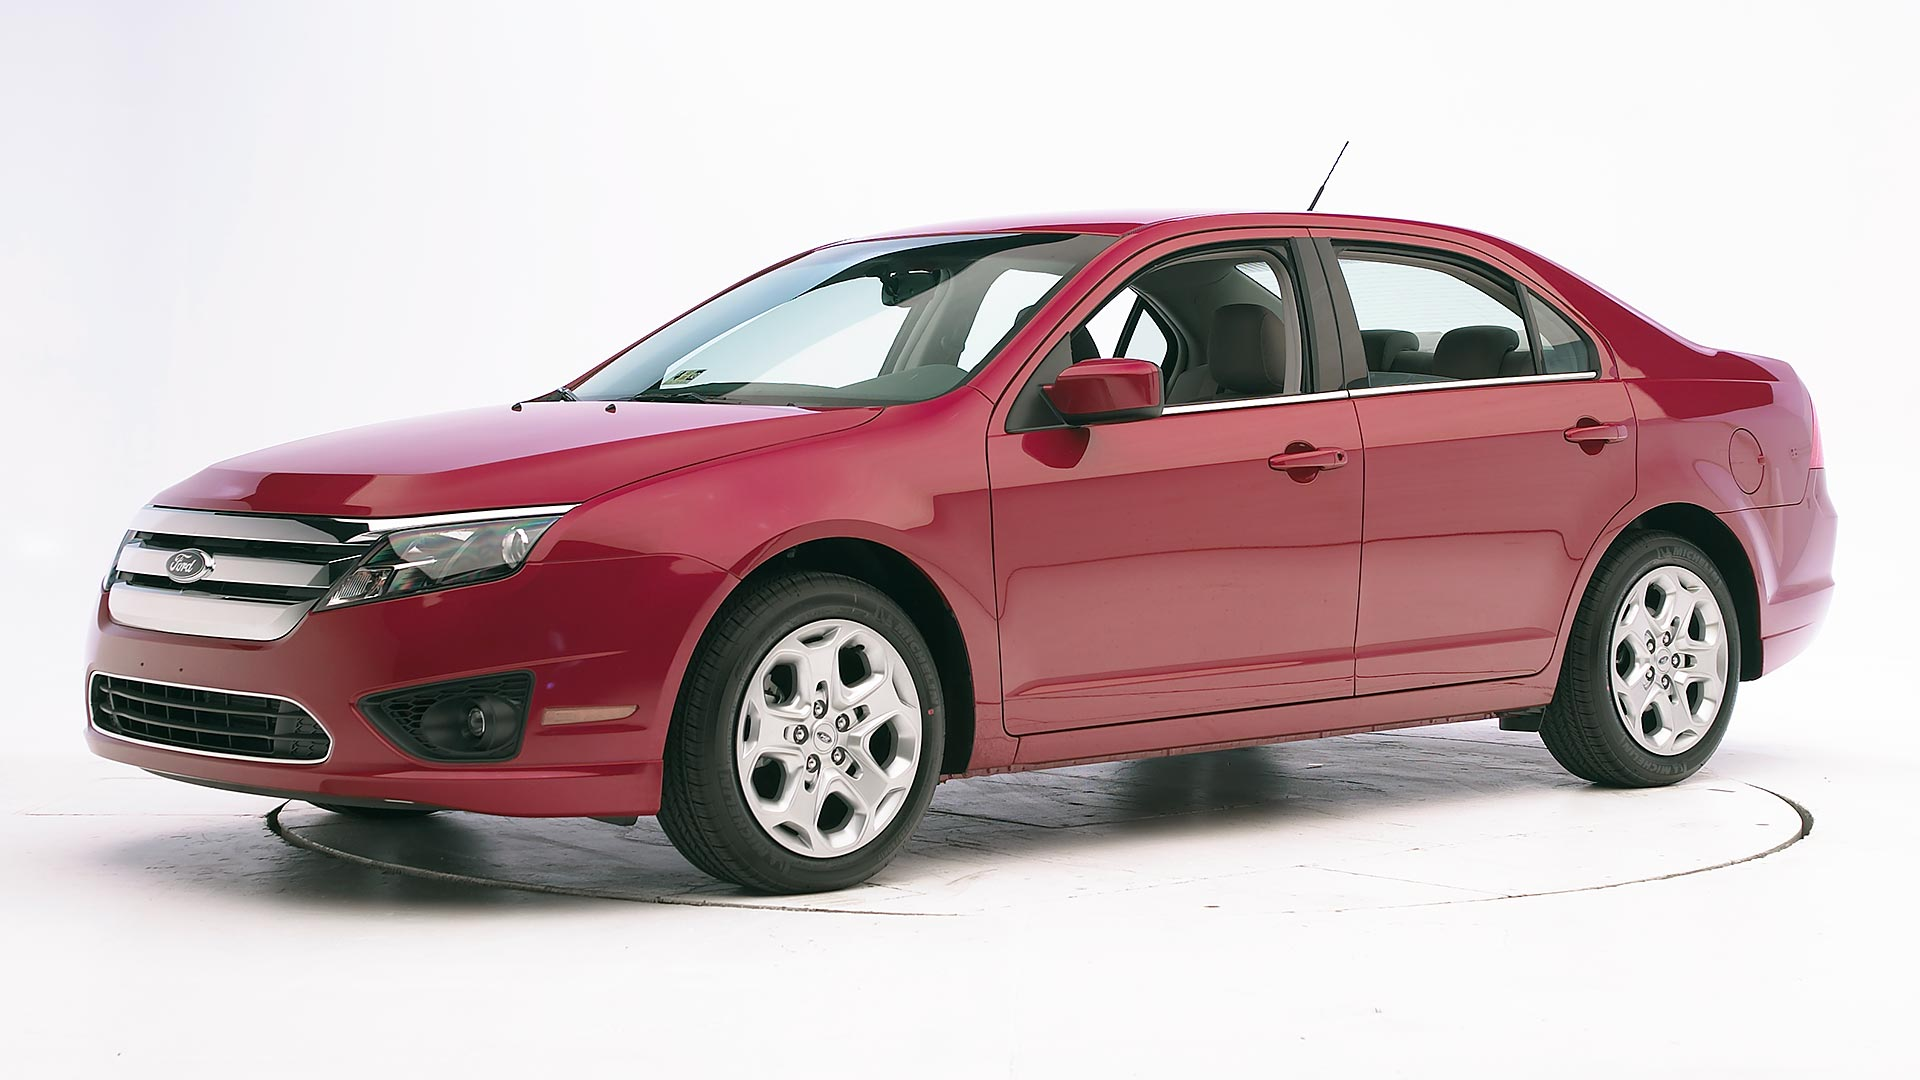 /pics/Ford-Fusion-2010-red.jpg